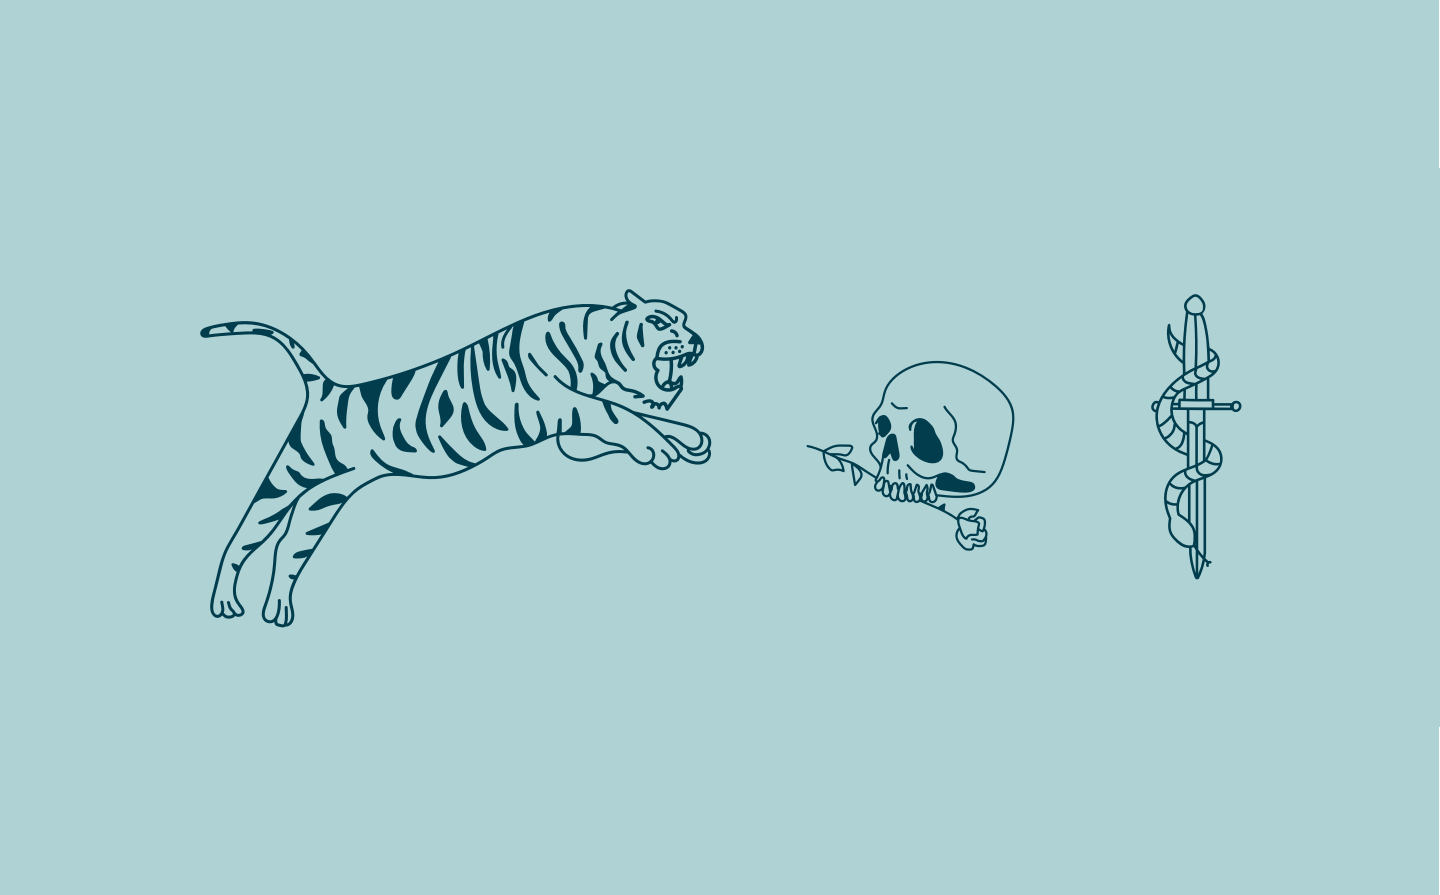 Cats-catering-illustrations